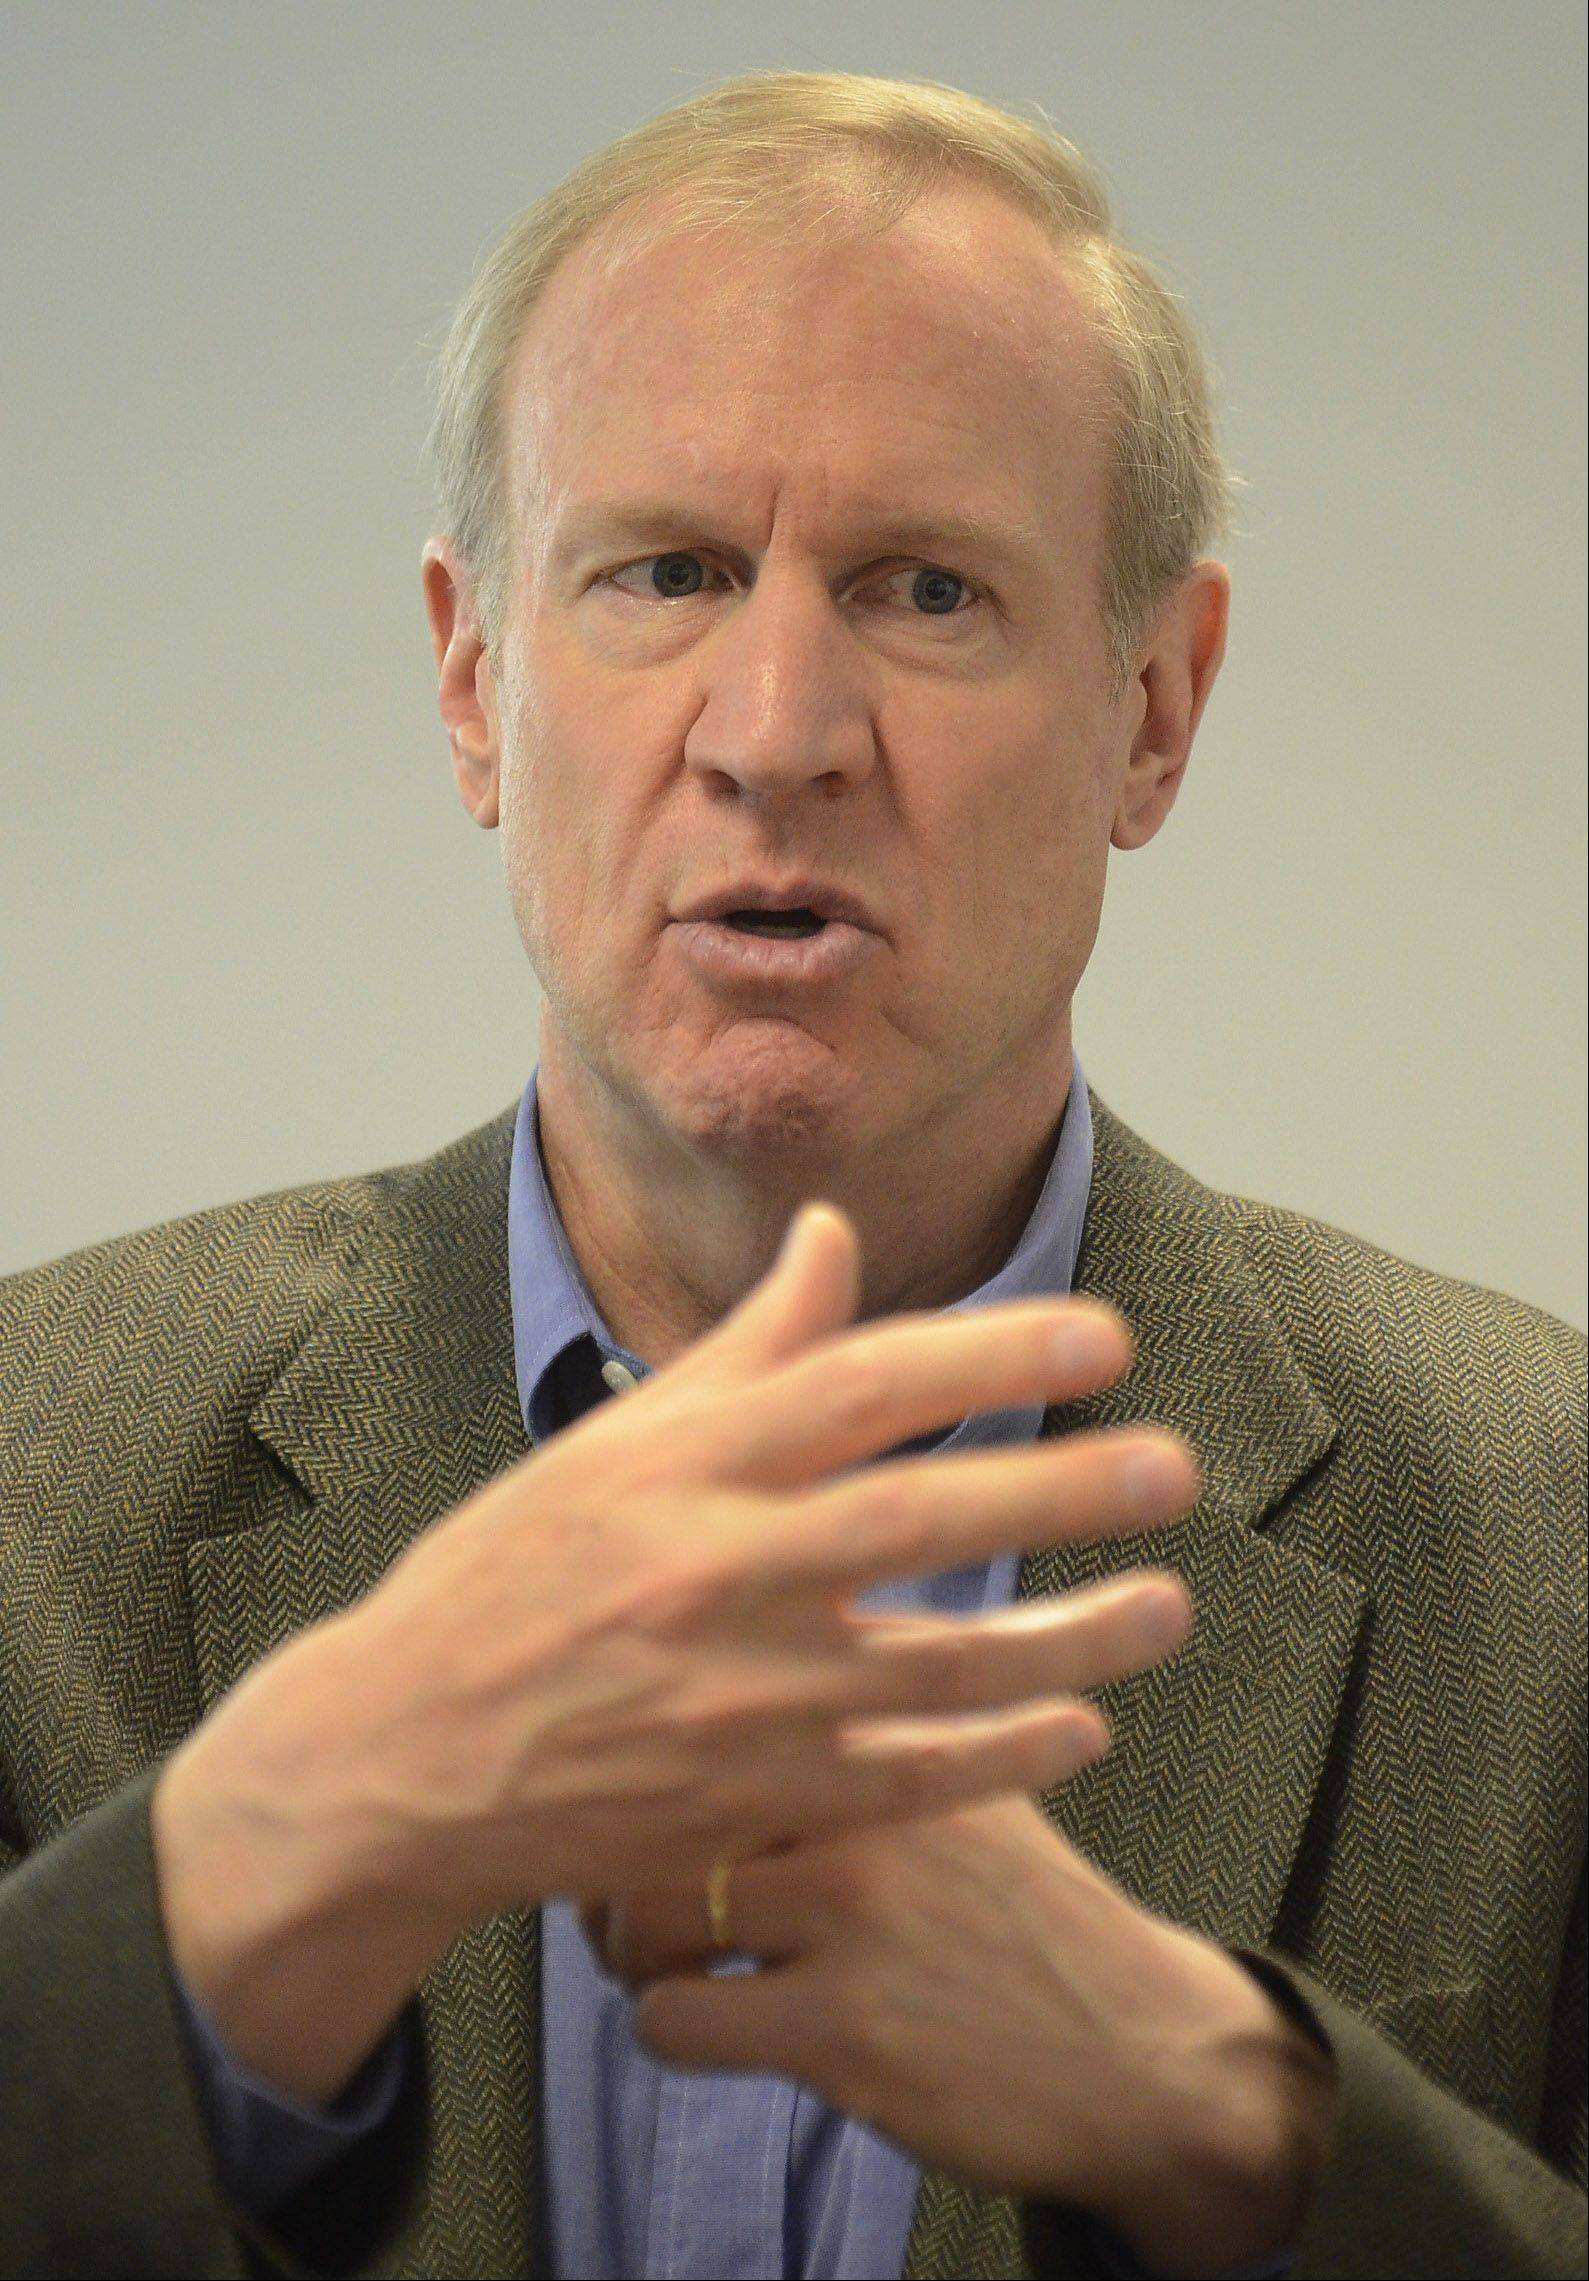 Exploring a run for the GOP gubernatorial nomination, venture capitalist Bruce Rauner won't apologize over rumors that he may have used clout to secure a coveted spot at Walter Payton Prep for his daughter.